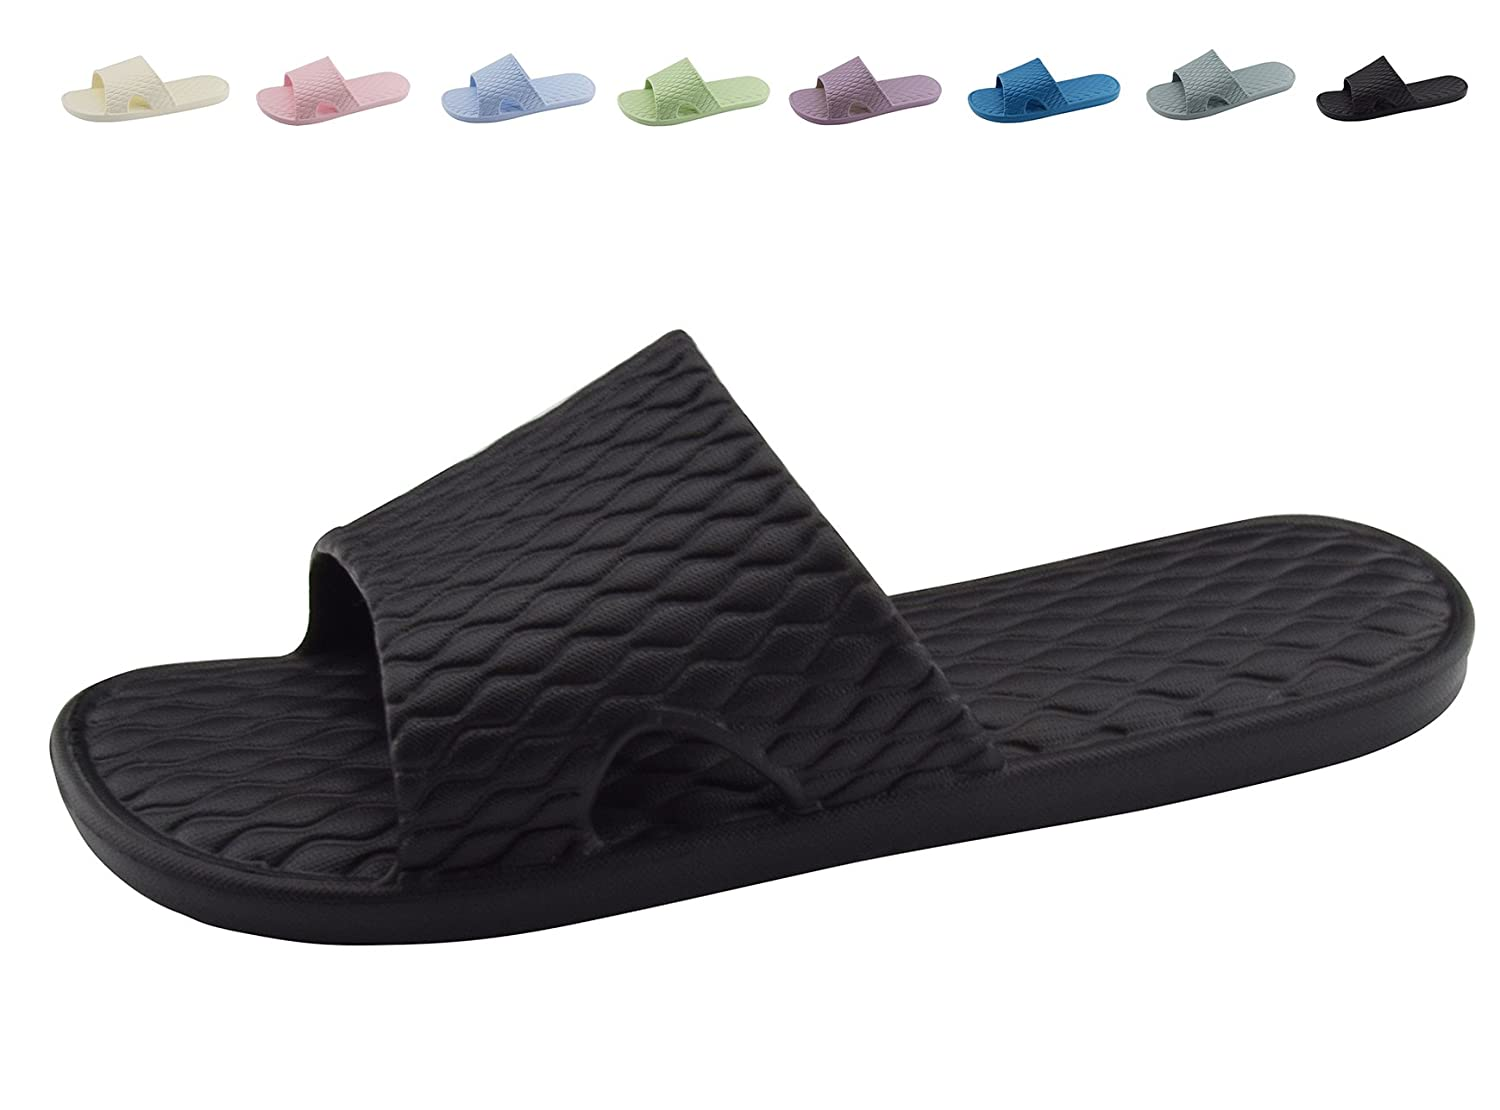 e604845c Amazon.com | Shower Bath Slippers Women and Men Non-Slip Home Bathroom  Sandals Indoor Outdoor Soft Shoes | Slippers